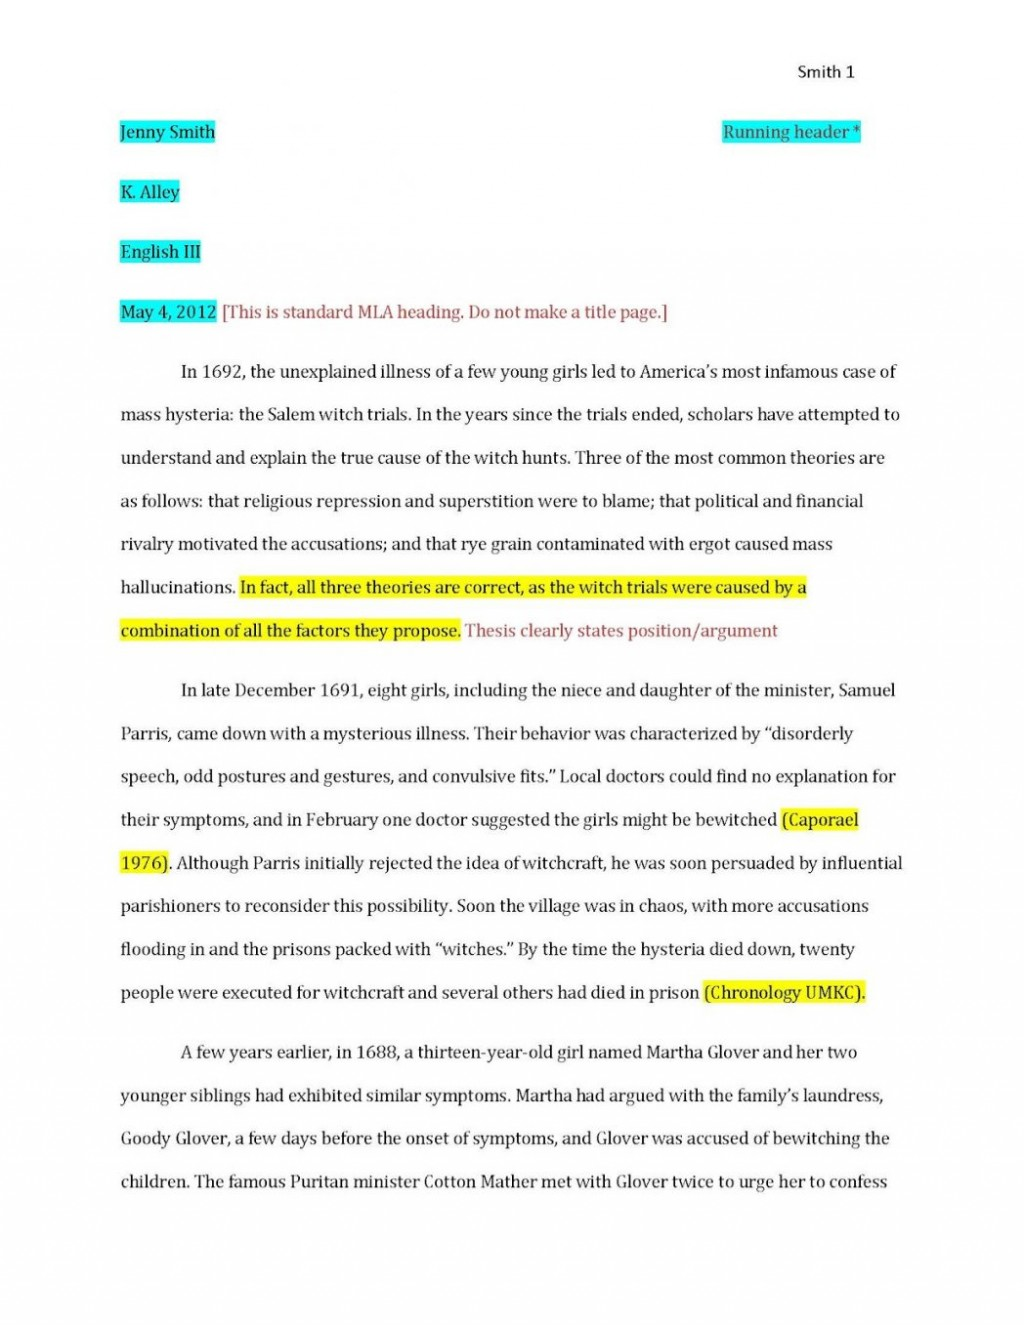 002 Mla Format Essay Generator Author Date References System Ready Set Automaticpaper P 1048x1357 Wondrous Funny Free Software Bot Large